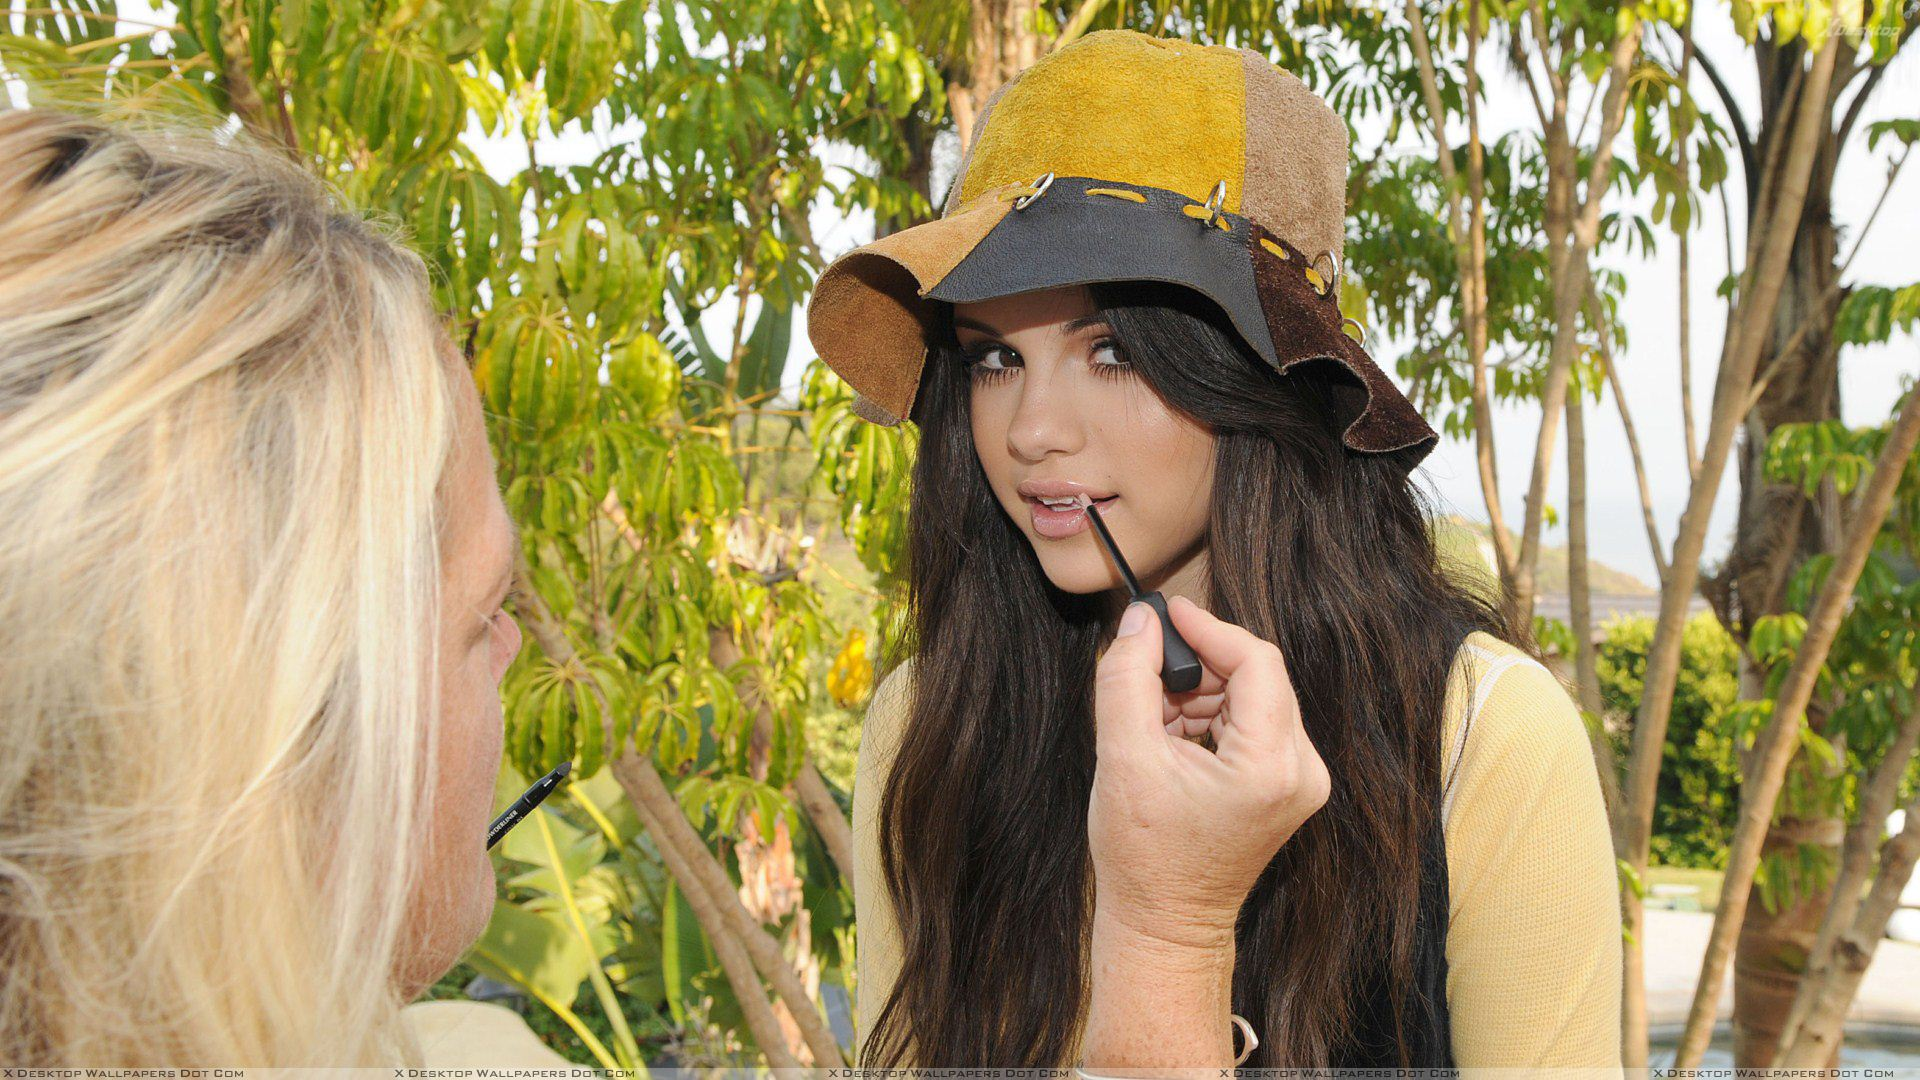 Selena Gomez Doing Makeup N Wearing Yellow Hat